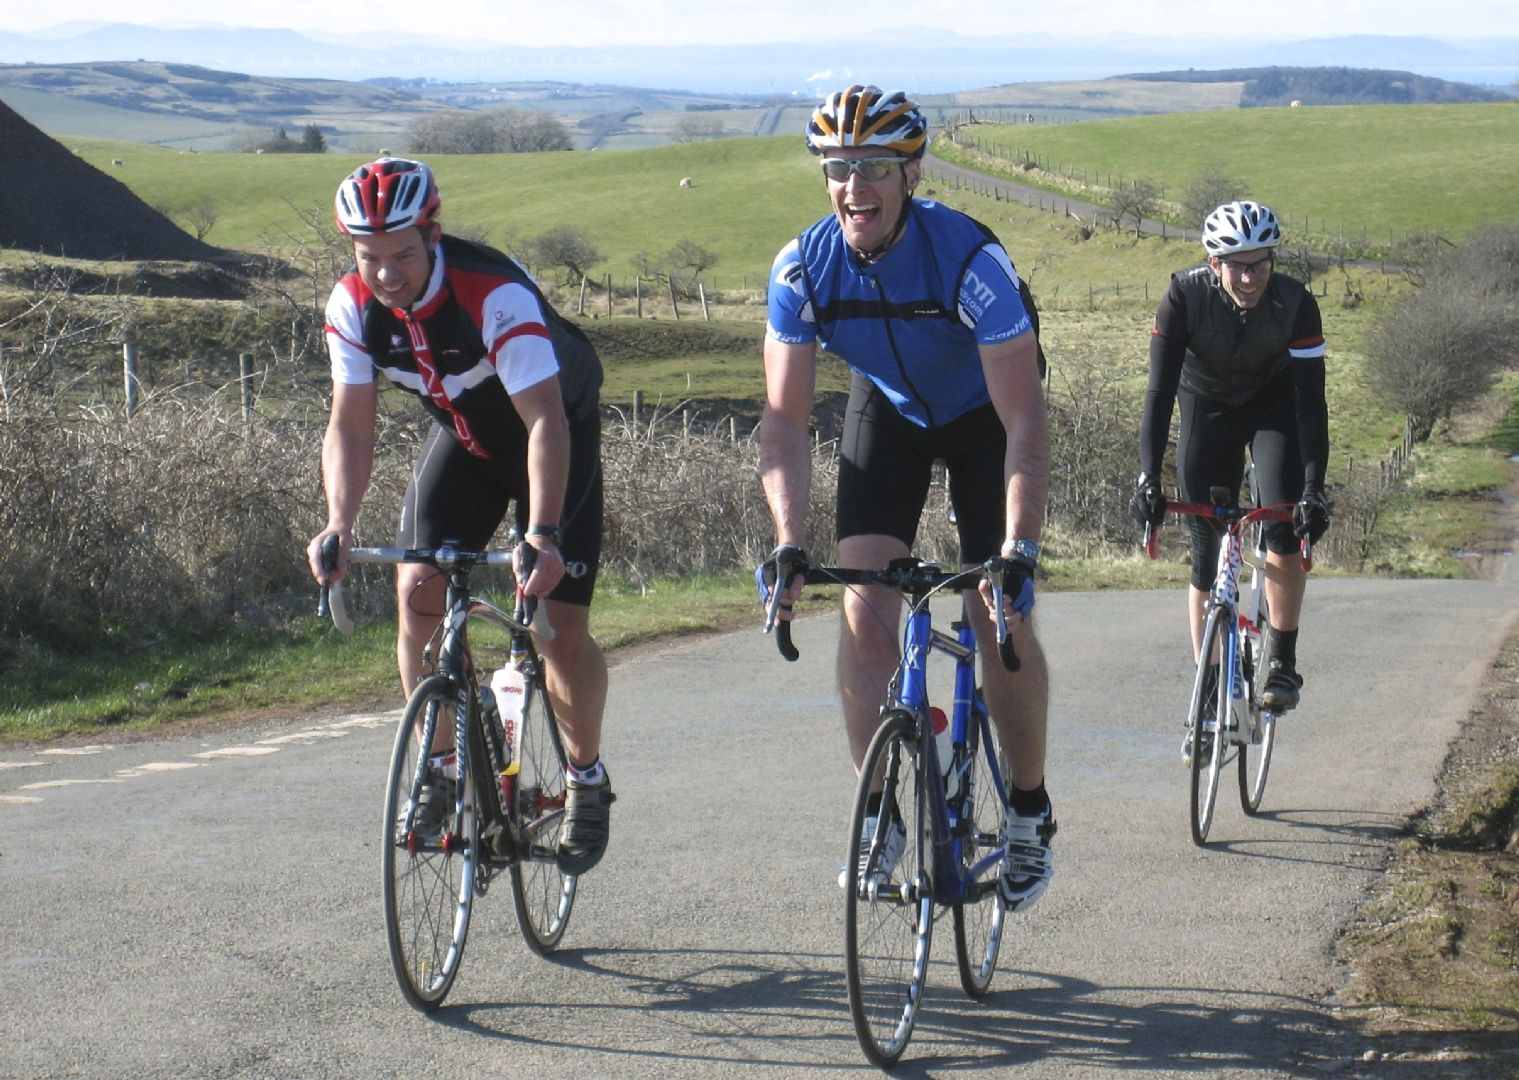 _Staff.178.9755.jpg - UK - North Lake District Explorer - Guided Road Cycling Weekend - Road Cycling